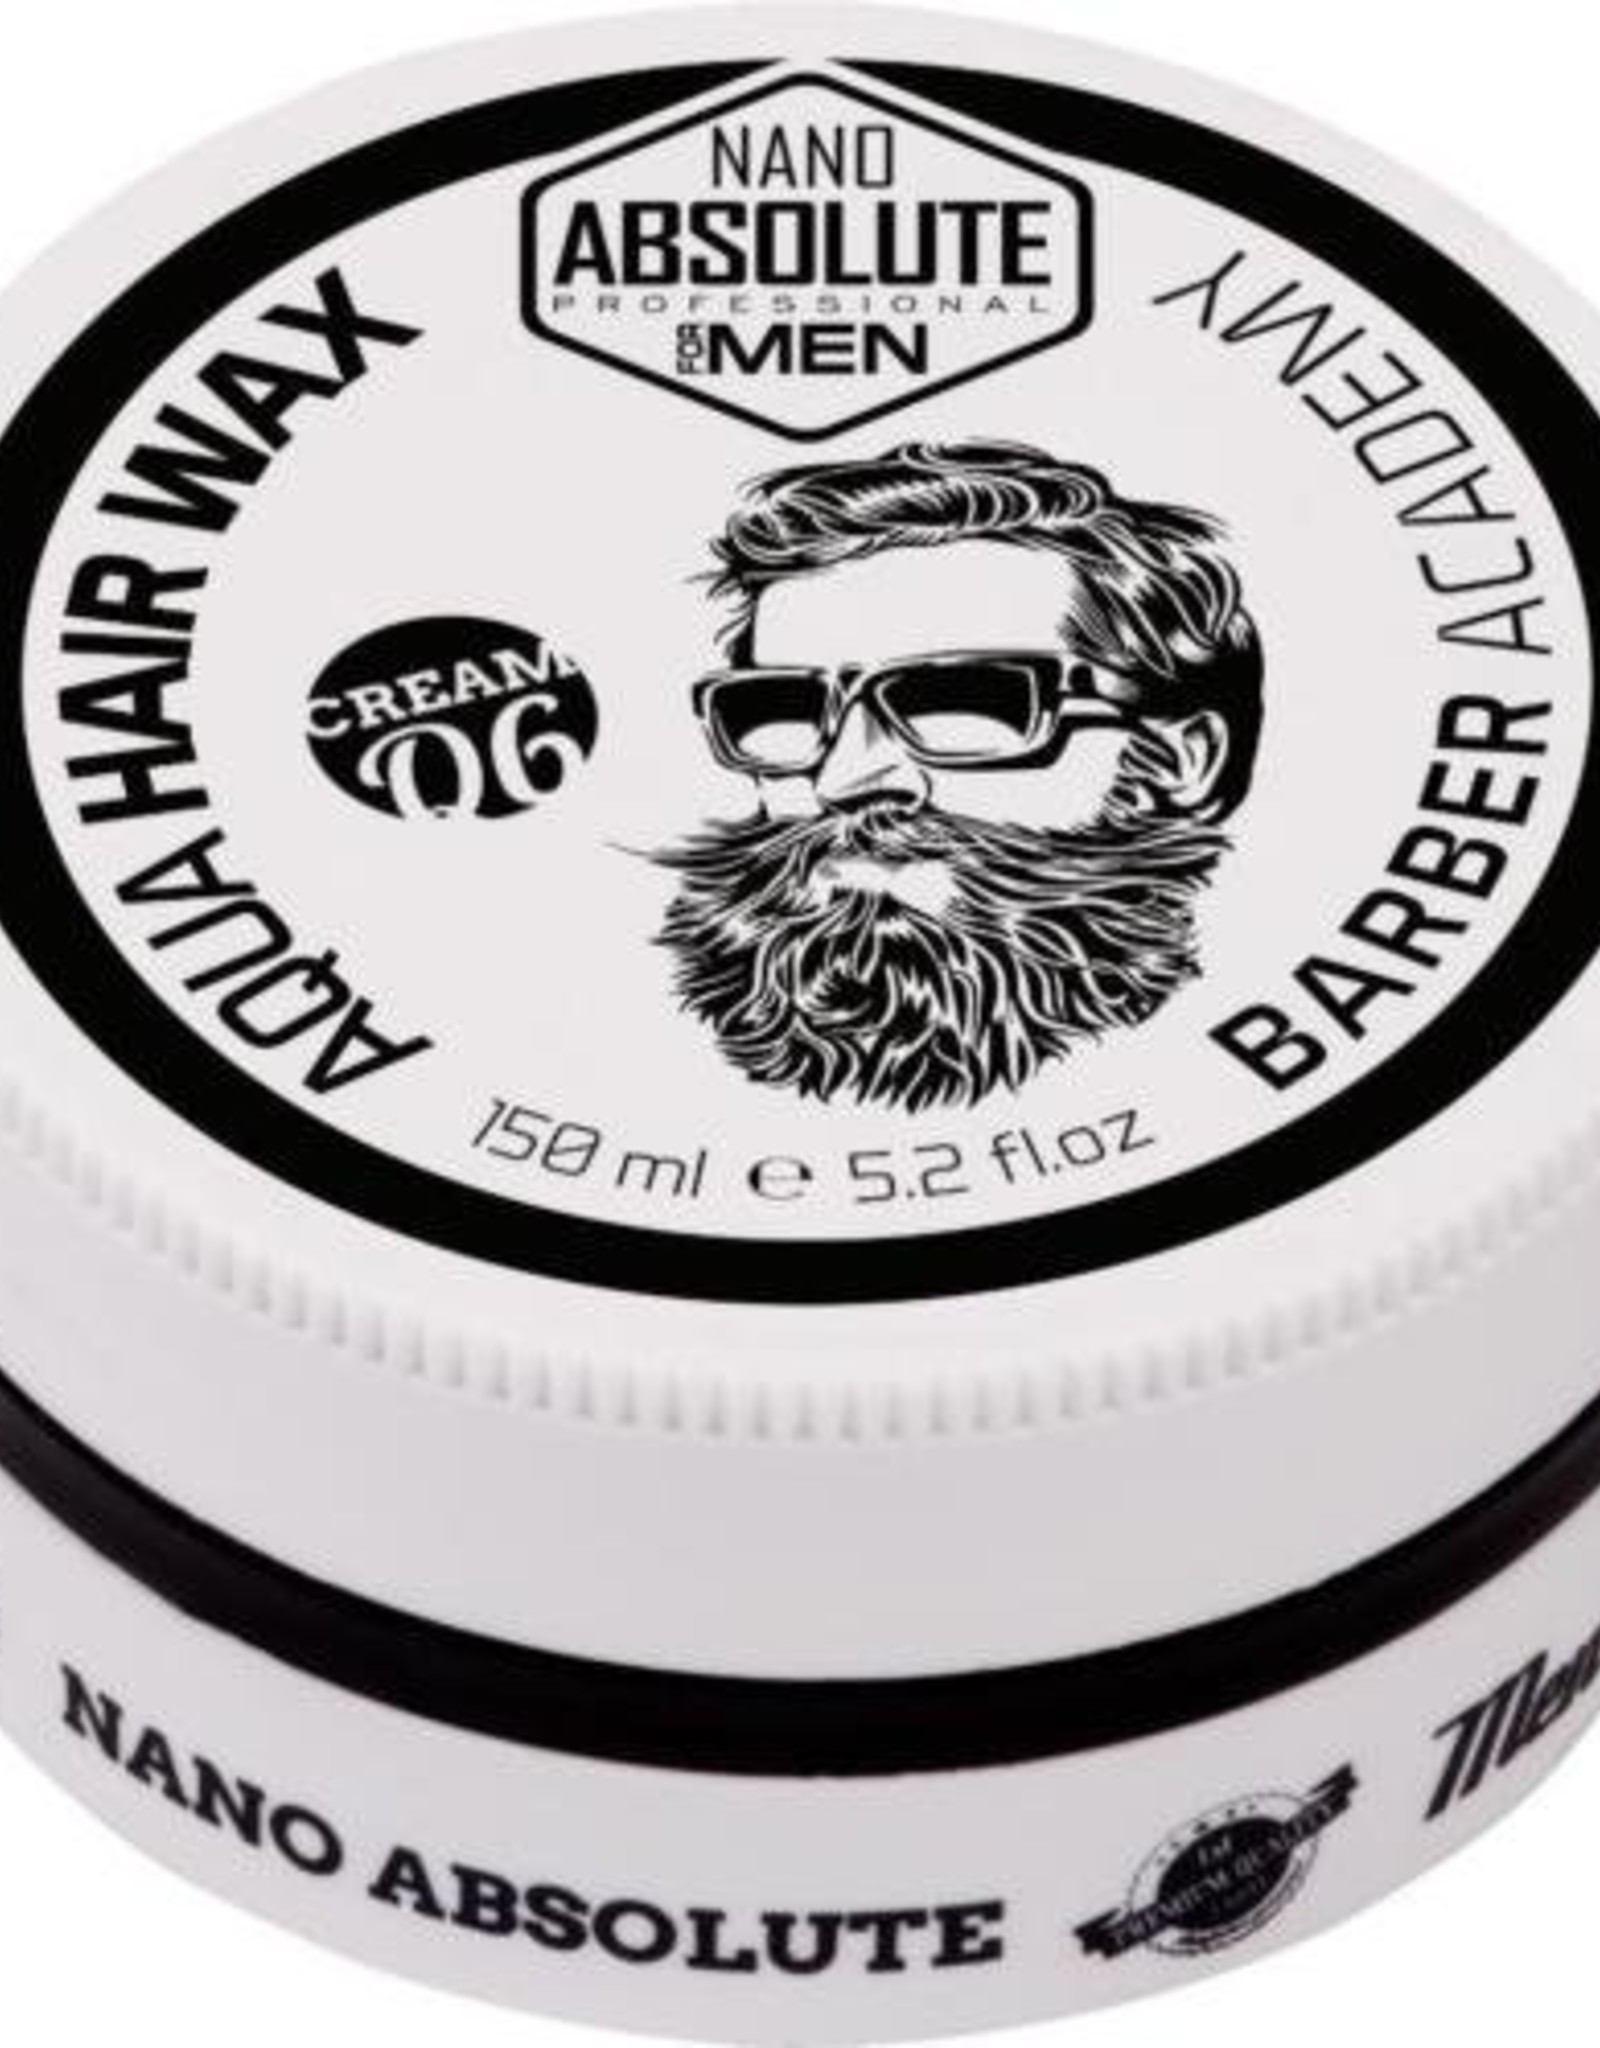 Nano Absolute Barber Academy Wit